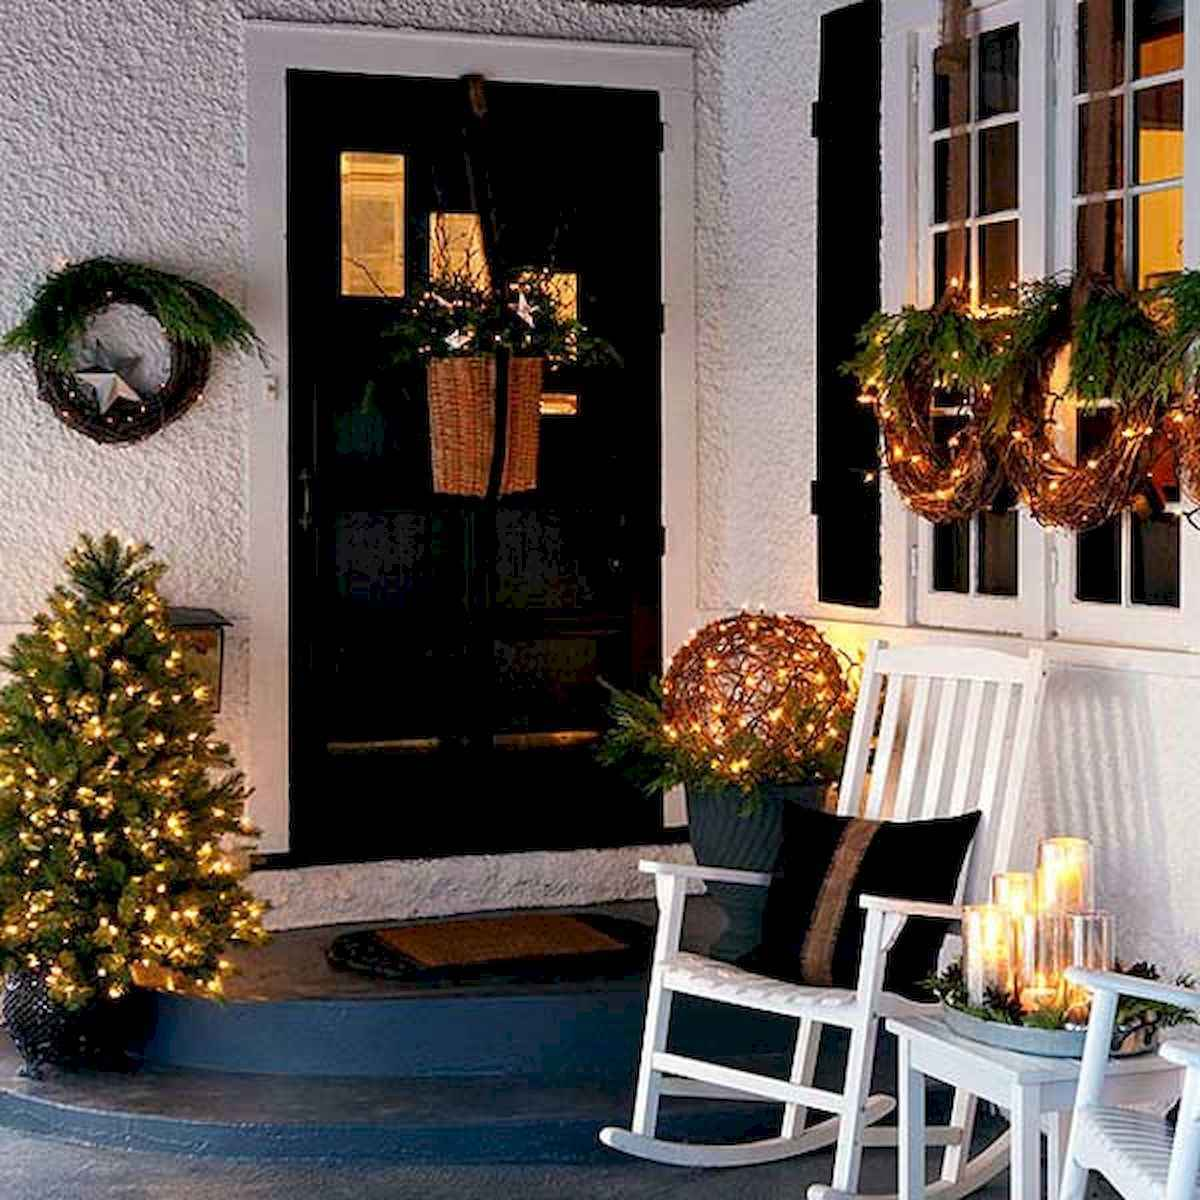 50 Awesome Christmas Front Porch Decor Ideas And Design (30)